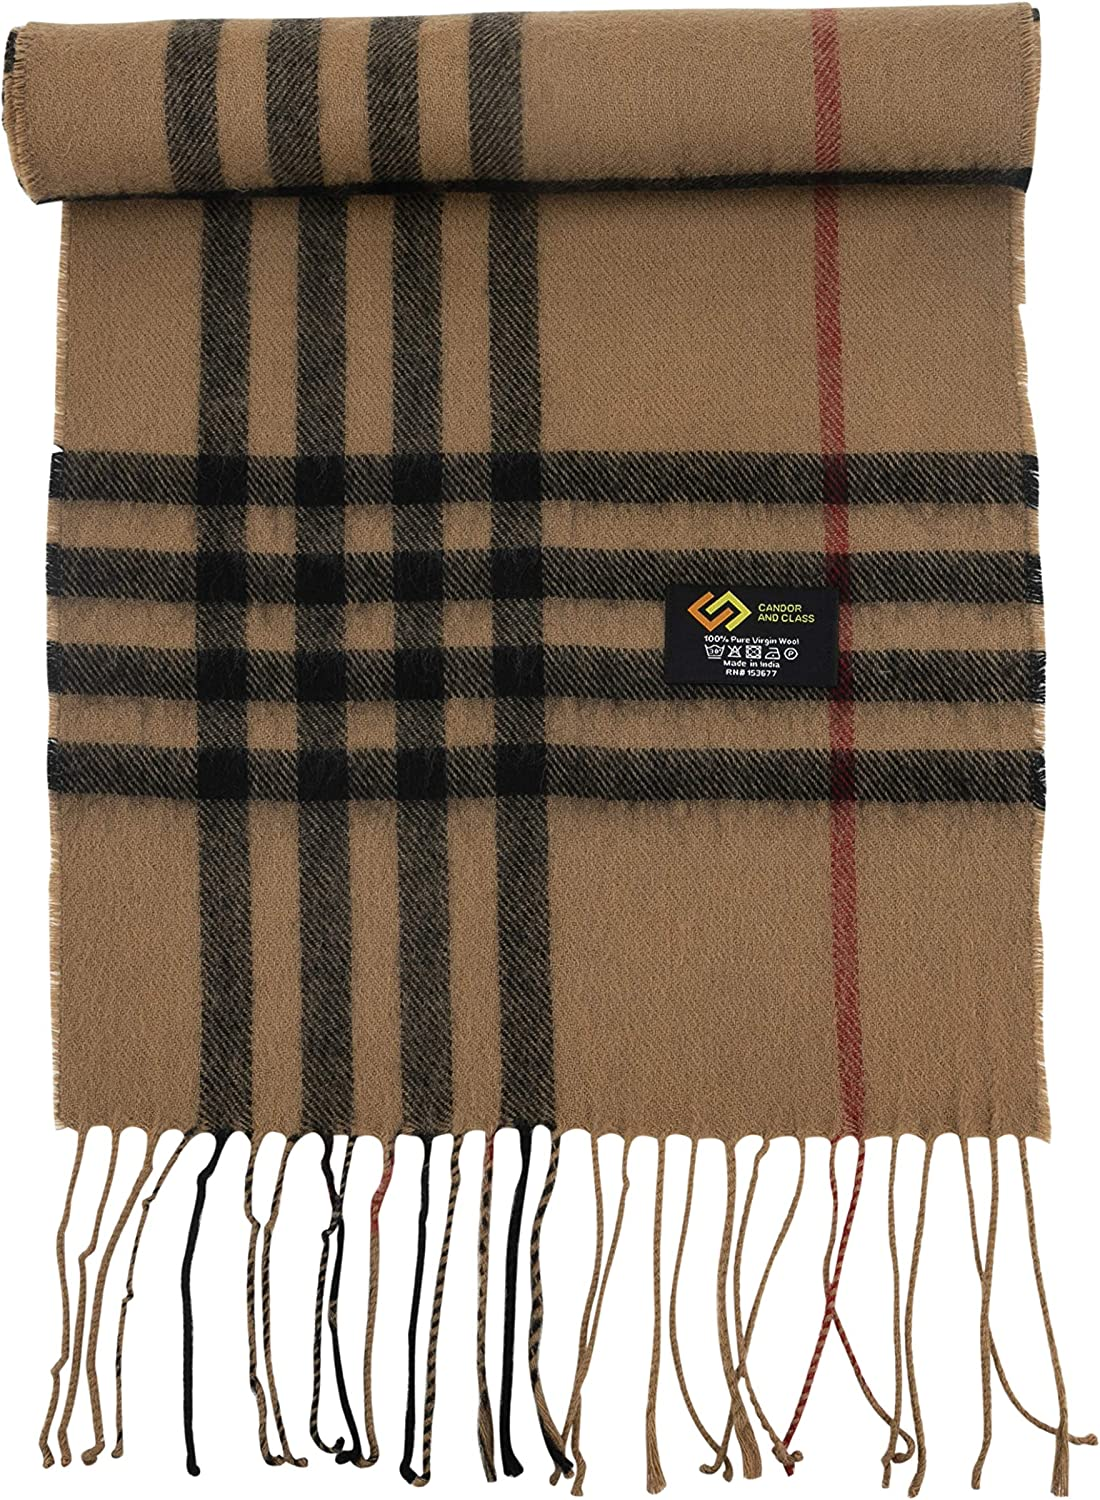 Men's 100% Pure Wool Winter Scarf, Premium Quality, Soft Luxurious Long Warm Fashion Scarves for Men by CANDOR AND CLASS